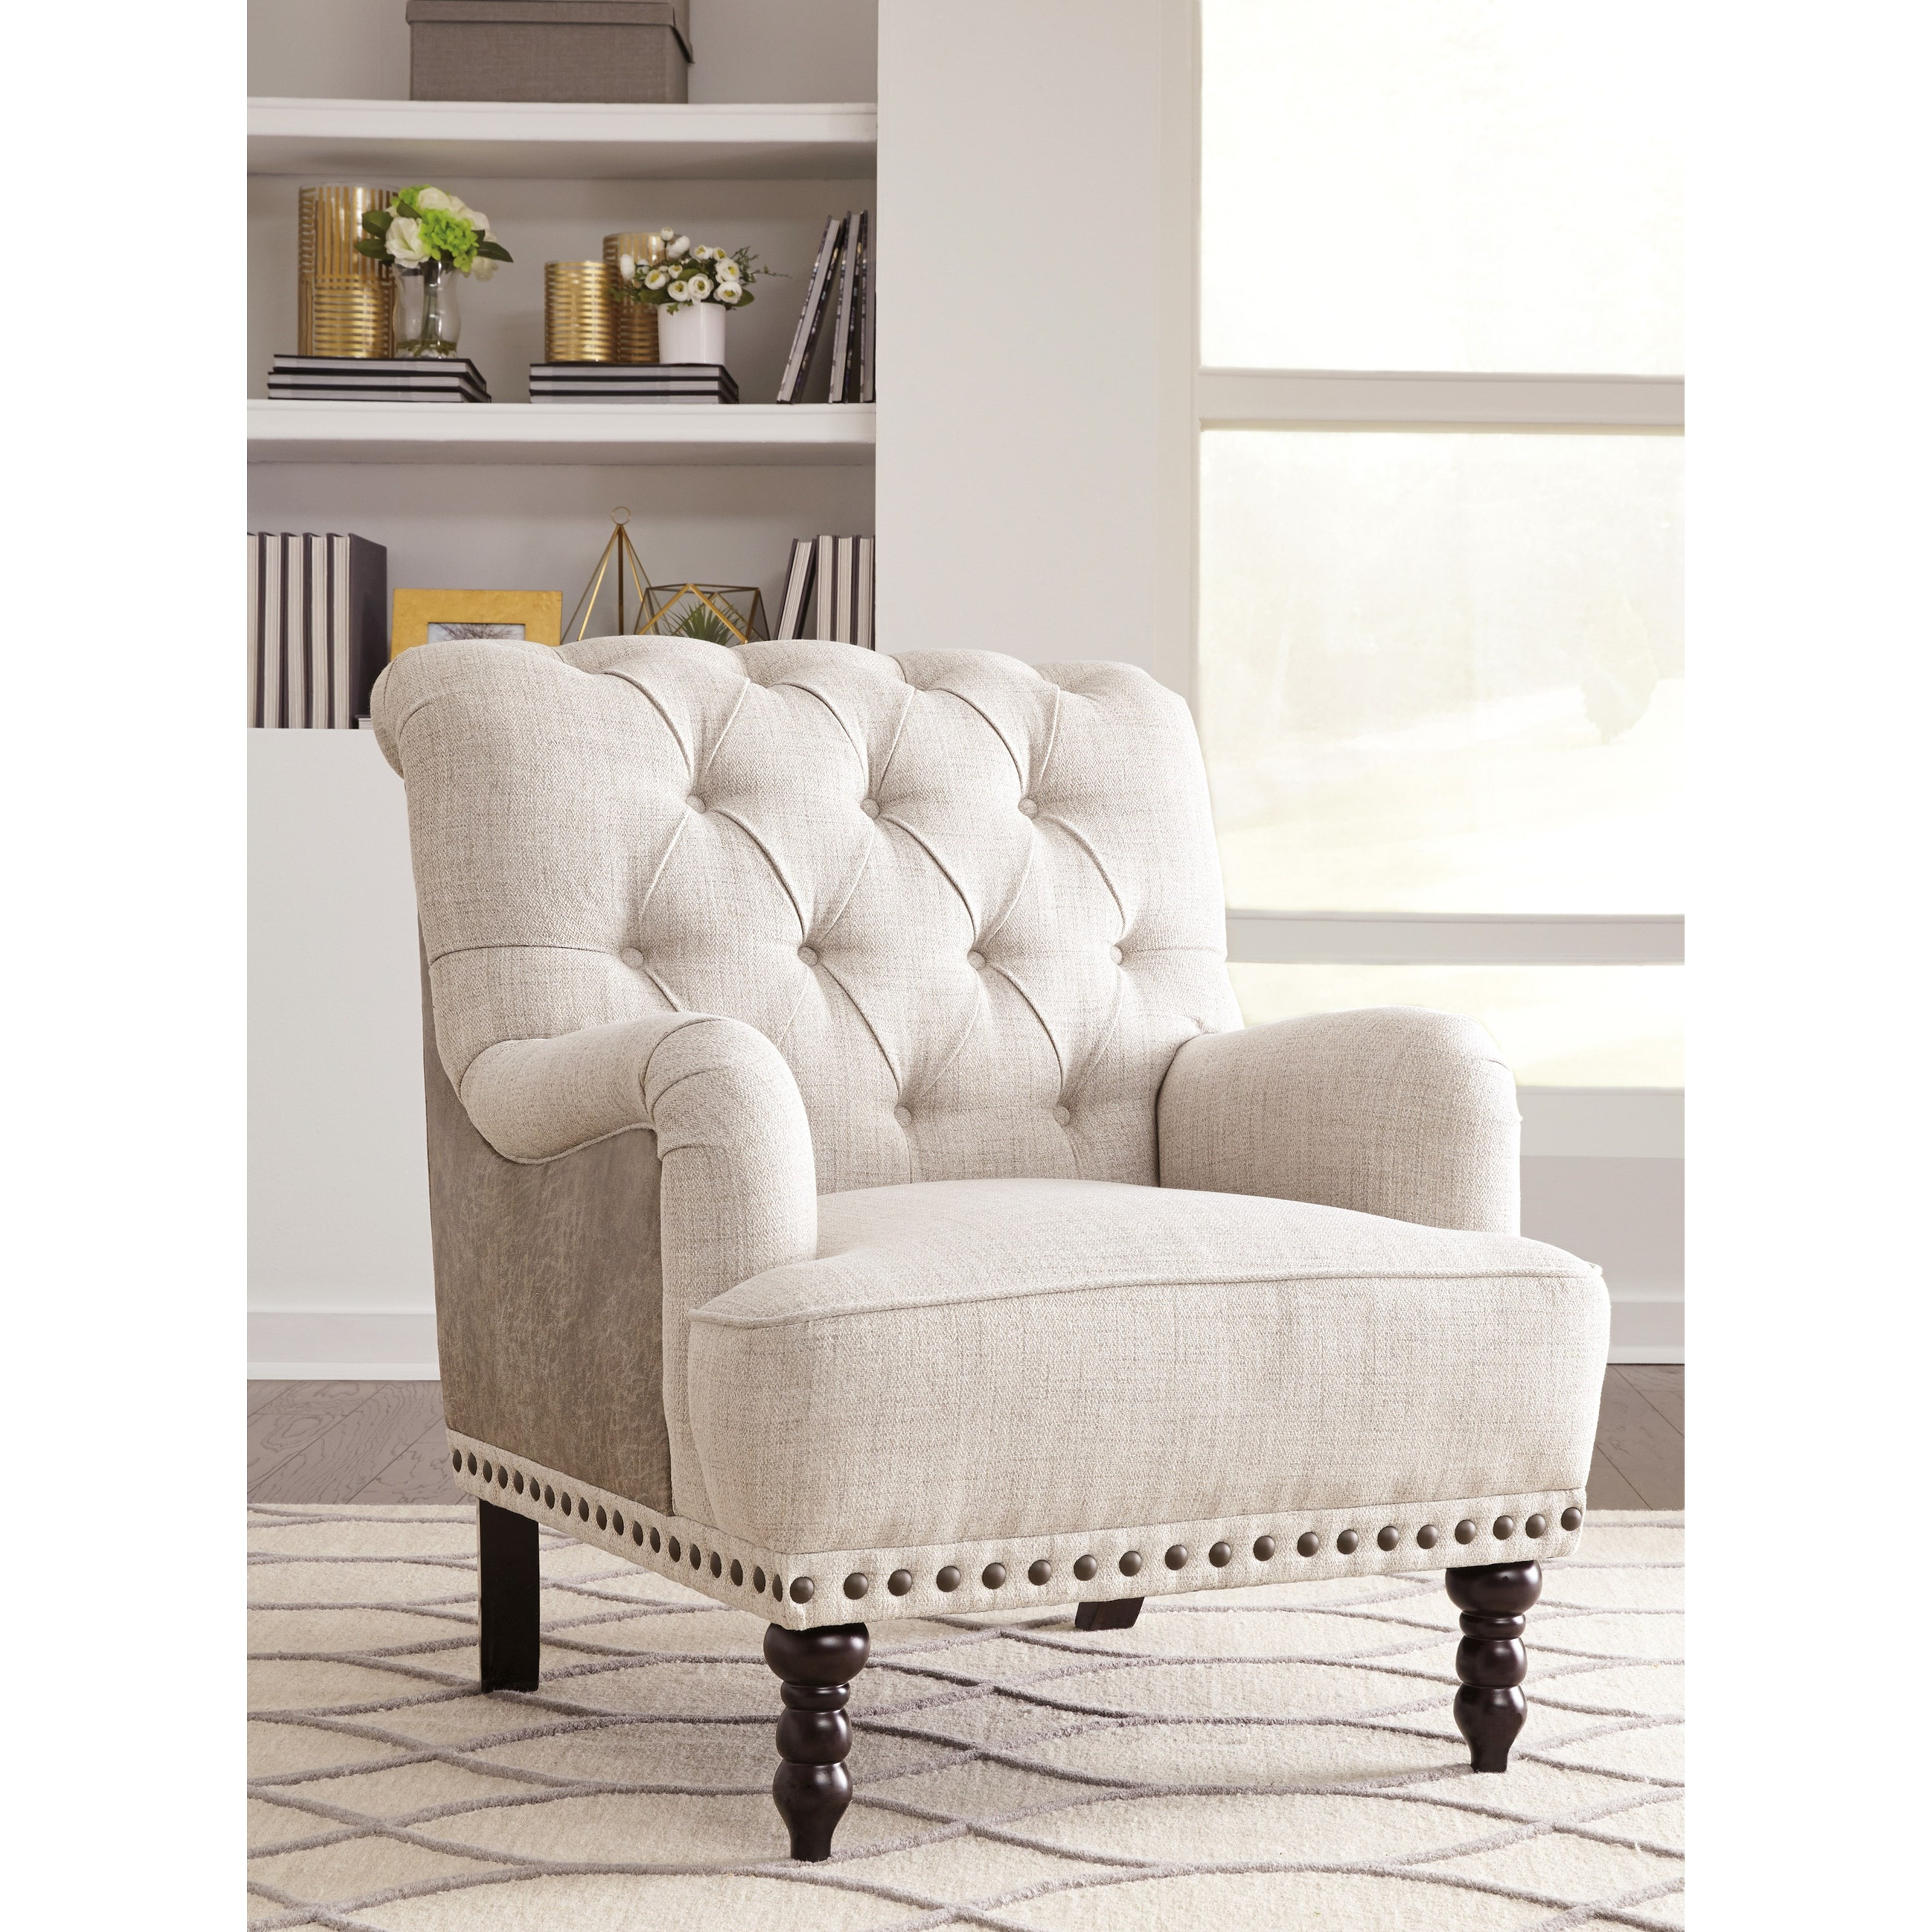 1050160 Ashley Furniture Kexlor Living Room Accent Chair: Signature Design By Ashley Tartonelle A3000053 Traditional